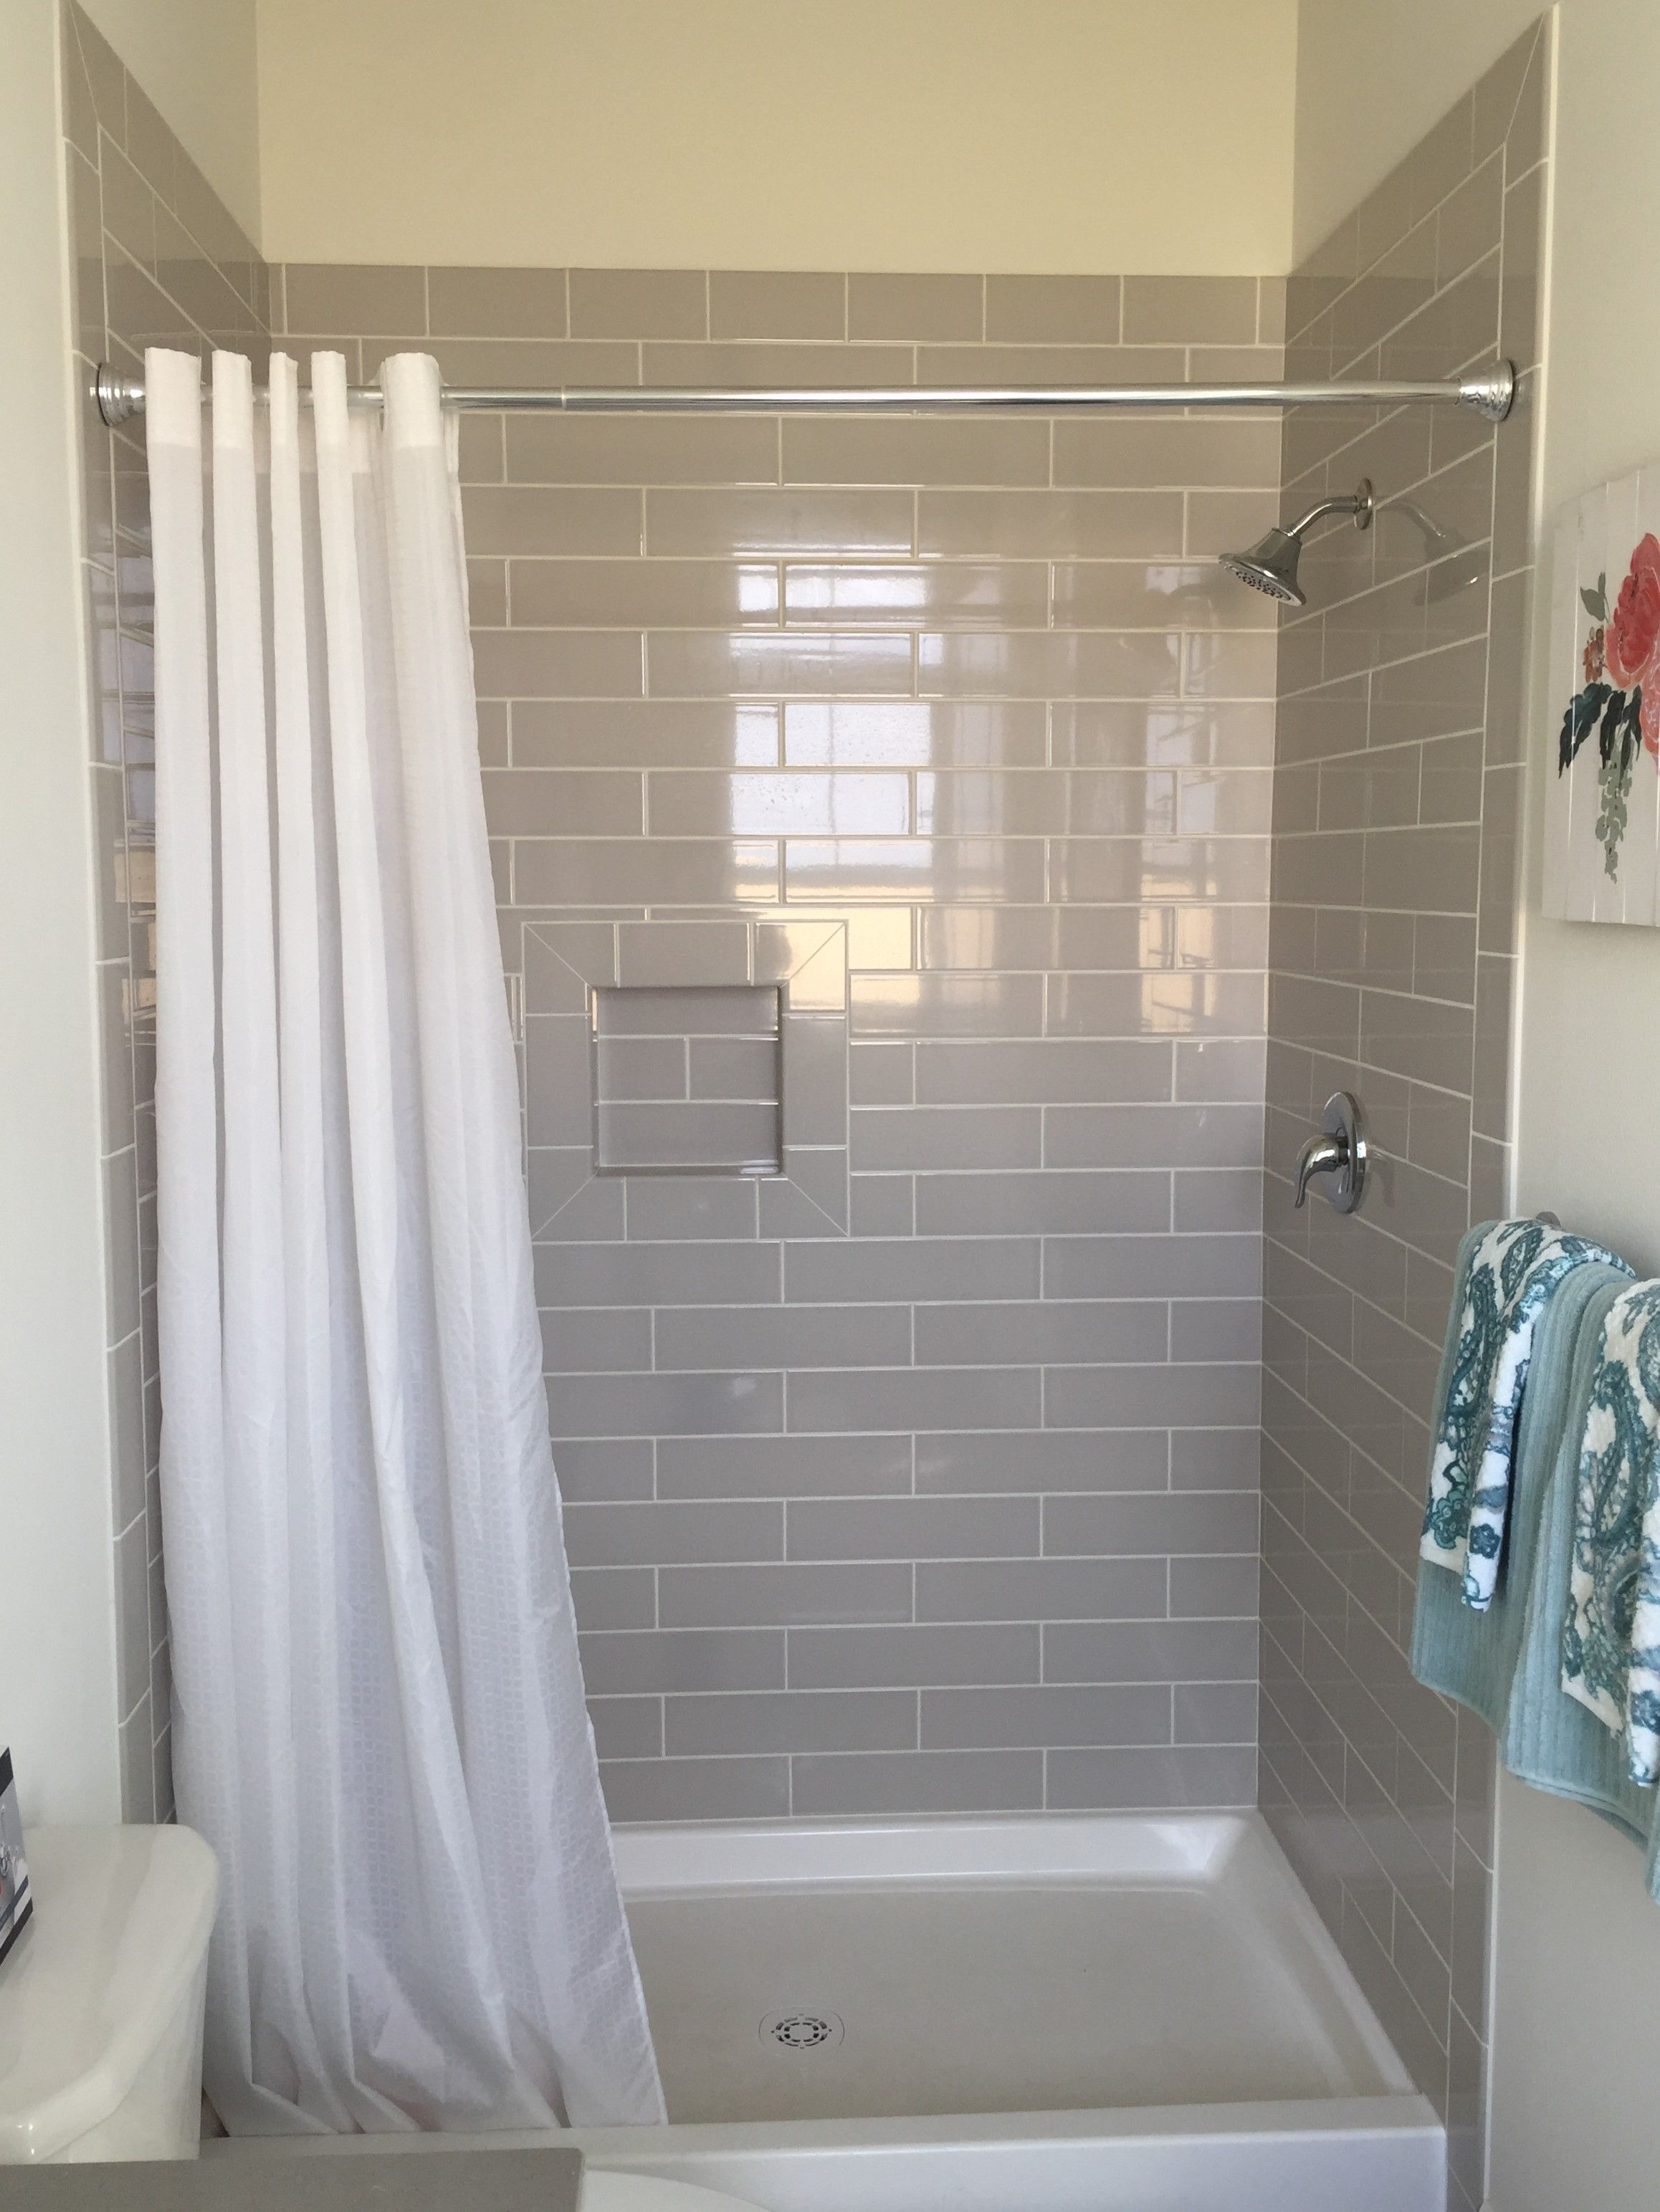 Grey And White Guest Bathroom 4x16 Warm Grey Tiled Walk In Shower Modern Room Walk In Shower Small Remodel